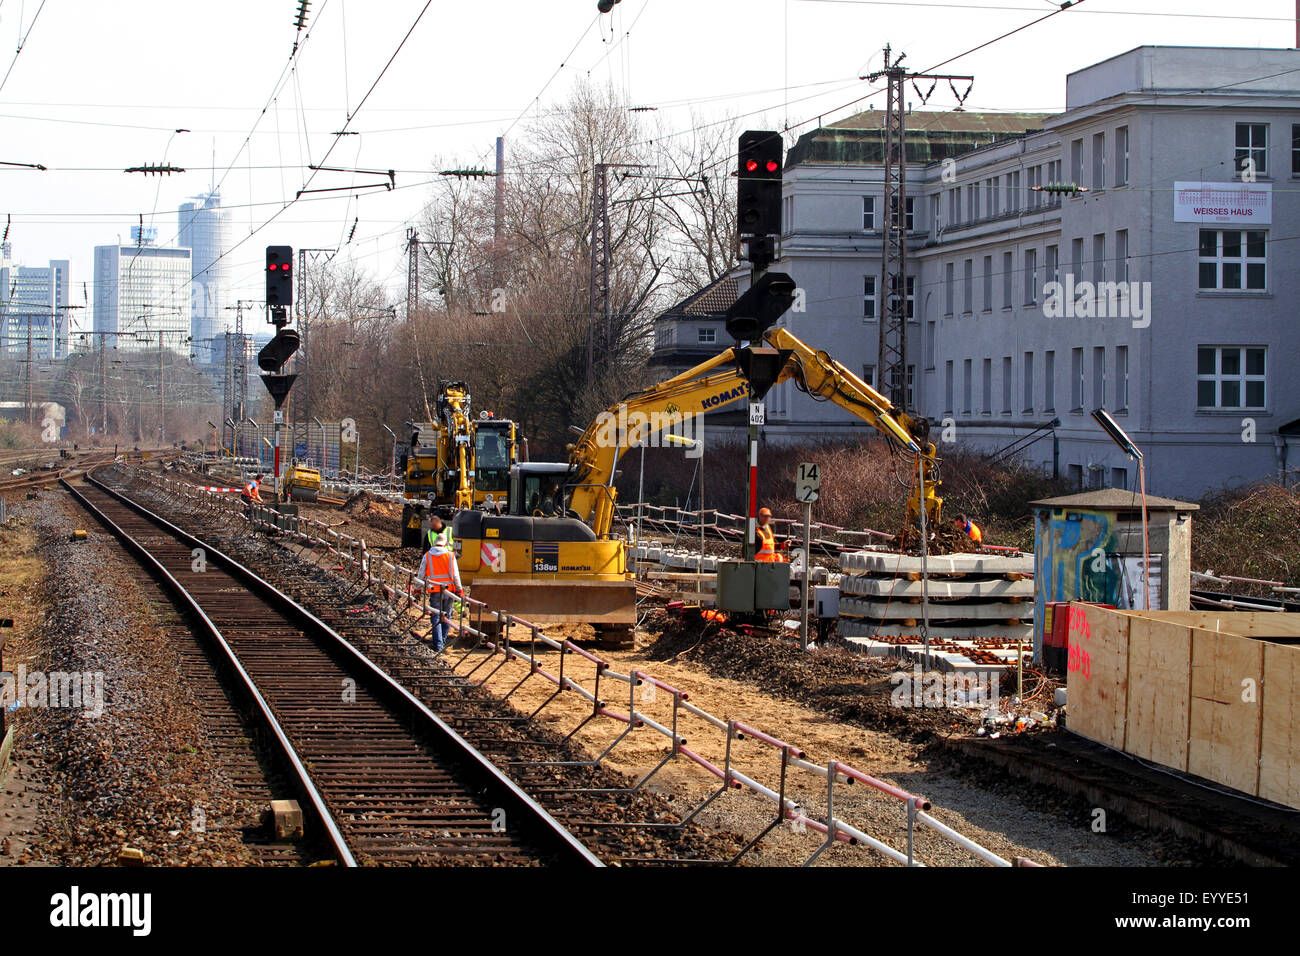 railway construction with rail-roader excavator, Germany - Stock Image